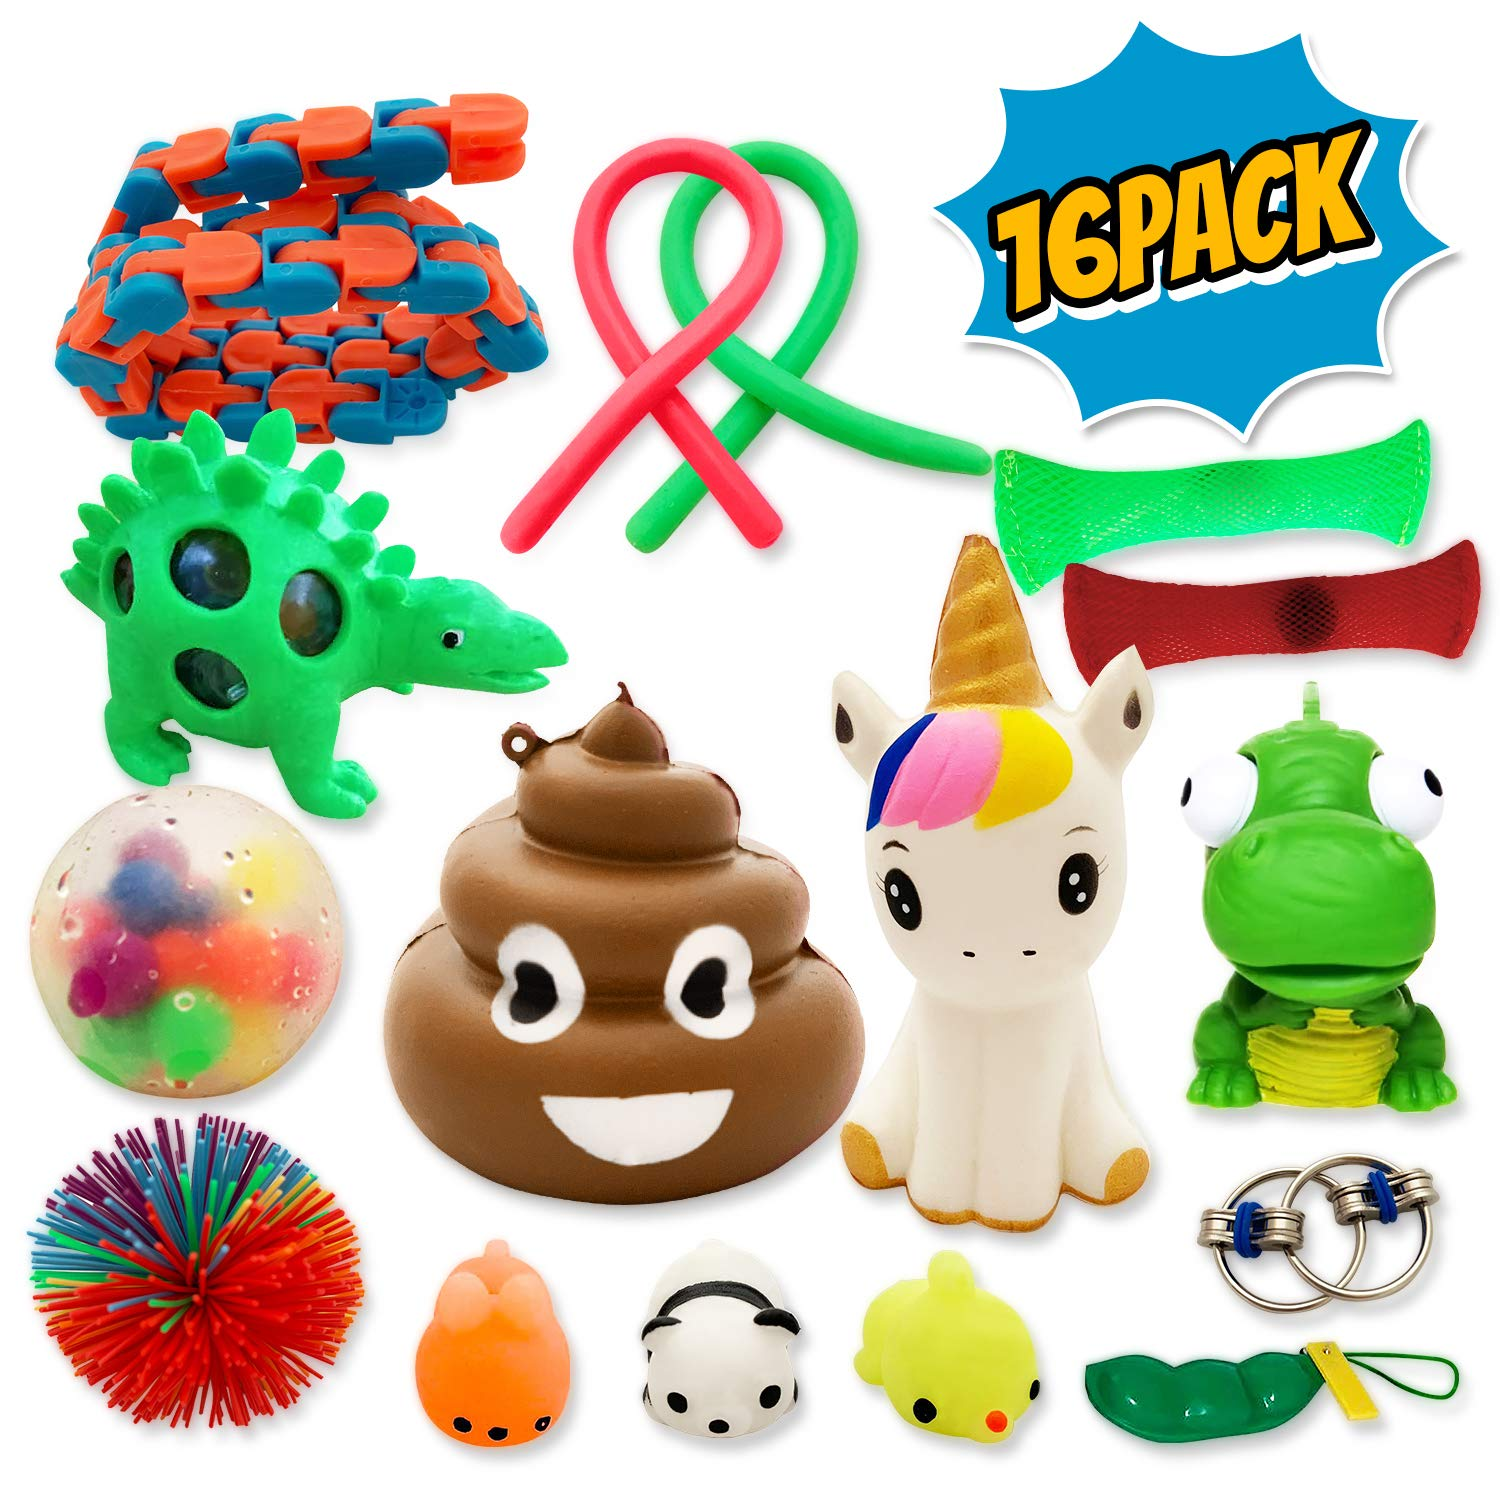 Pack of 16 Fidget Toys for Sensory Kids.